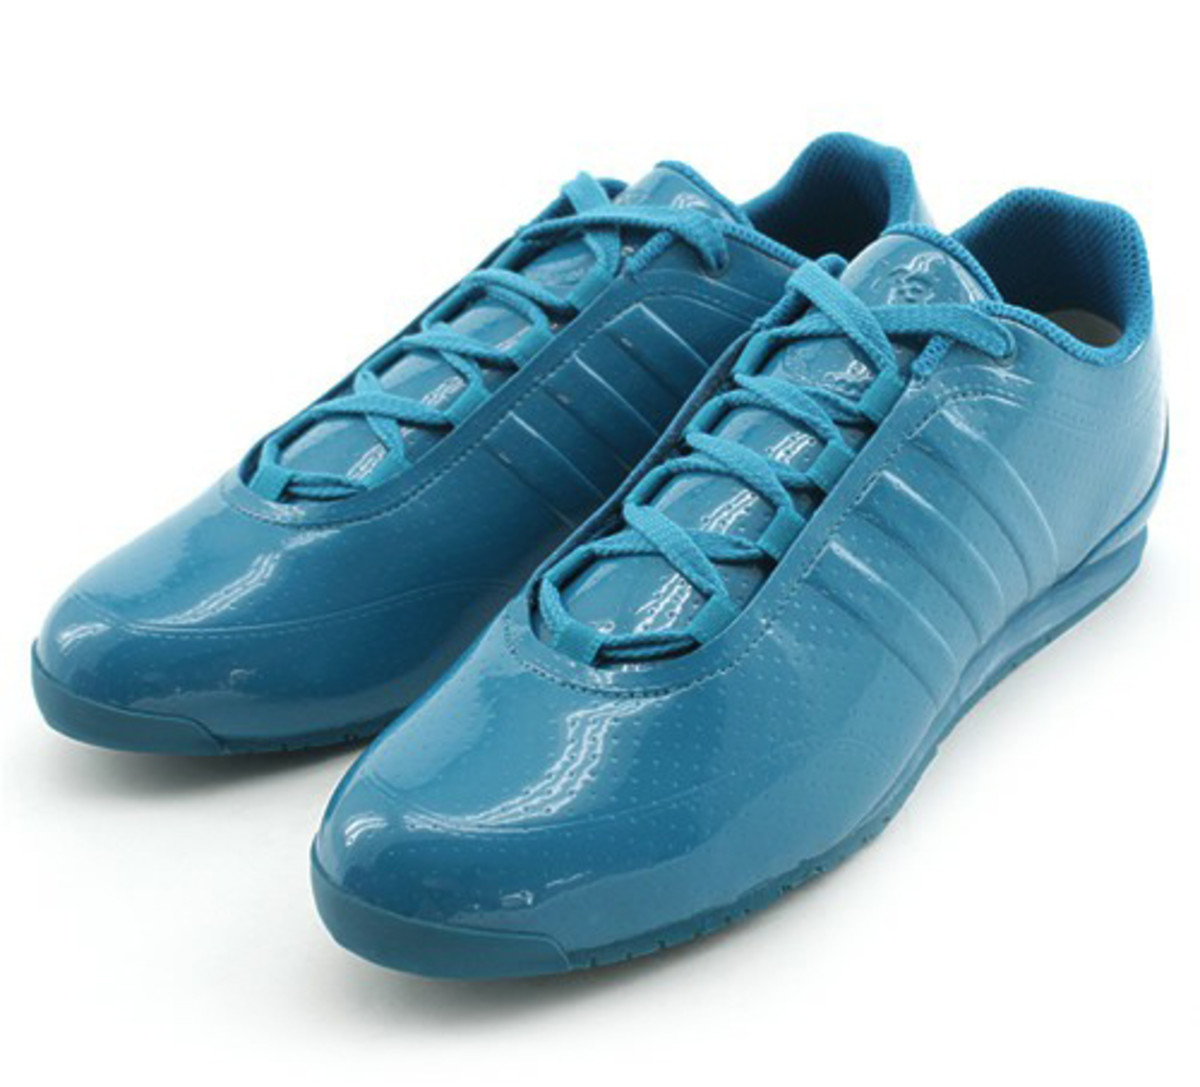 adidas-y-3-spring-summer-2010-honja-low-06